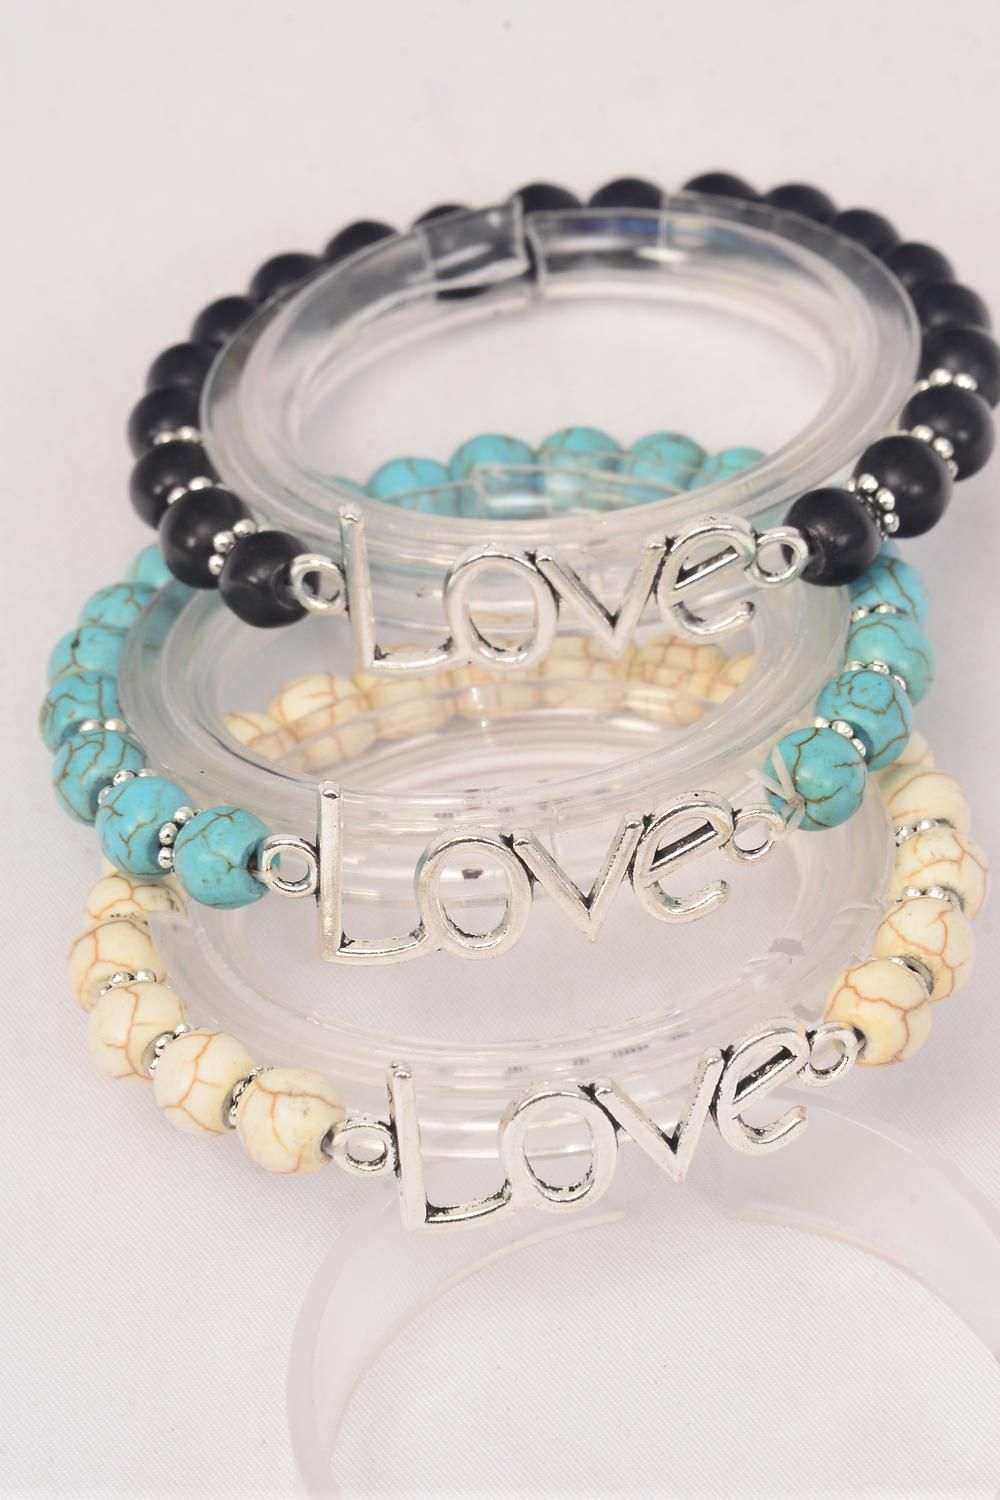 Bracelet Love Words Stretch 8 mm Semiprecious Stone/DZ **Stretch** 4 Black,4 Ivory,4 Turquoise Asst,Hang Tag & OPP Bag & UPC Code